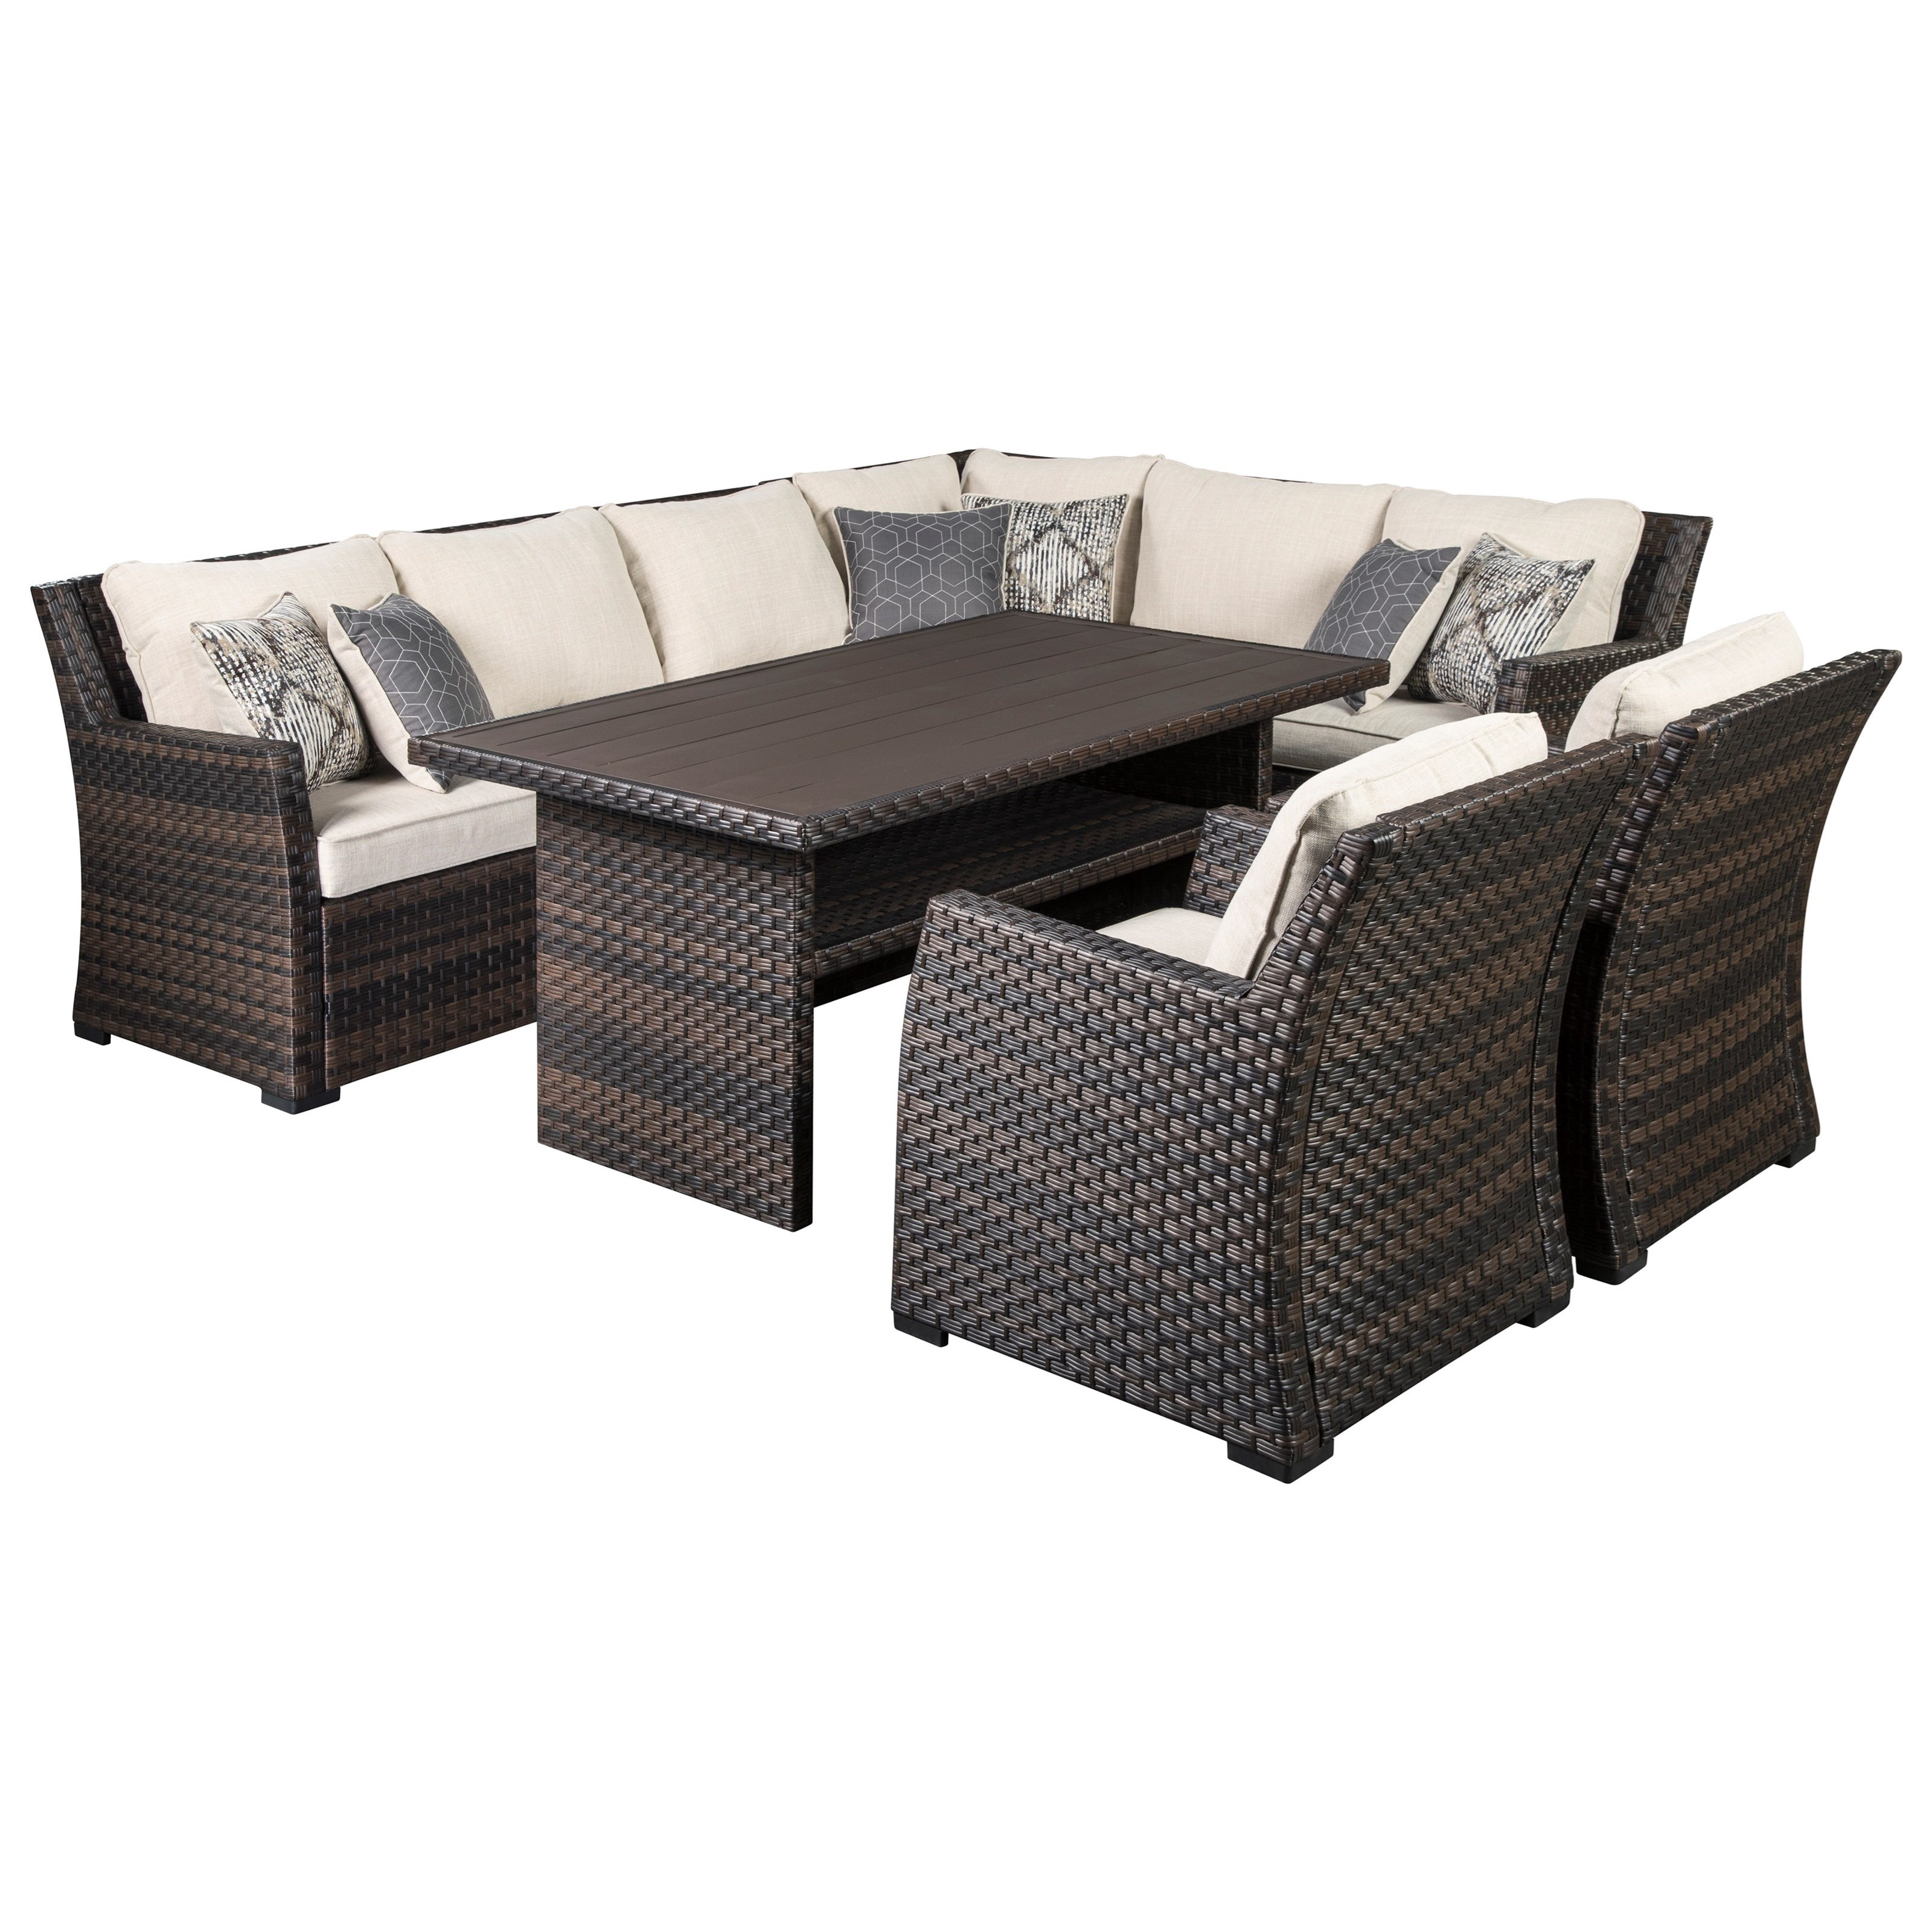 easy isle outdoor sectional with table 2 chairs